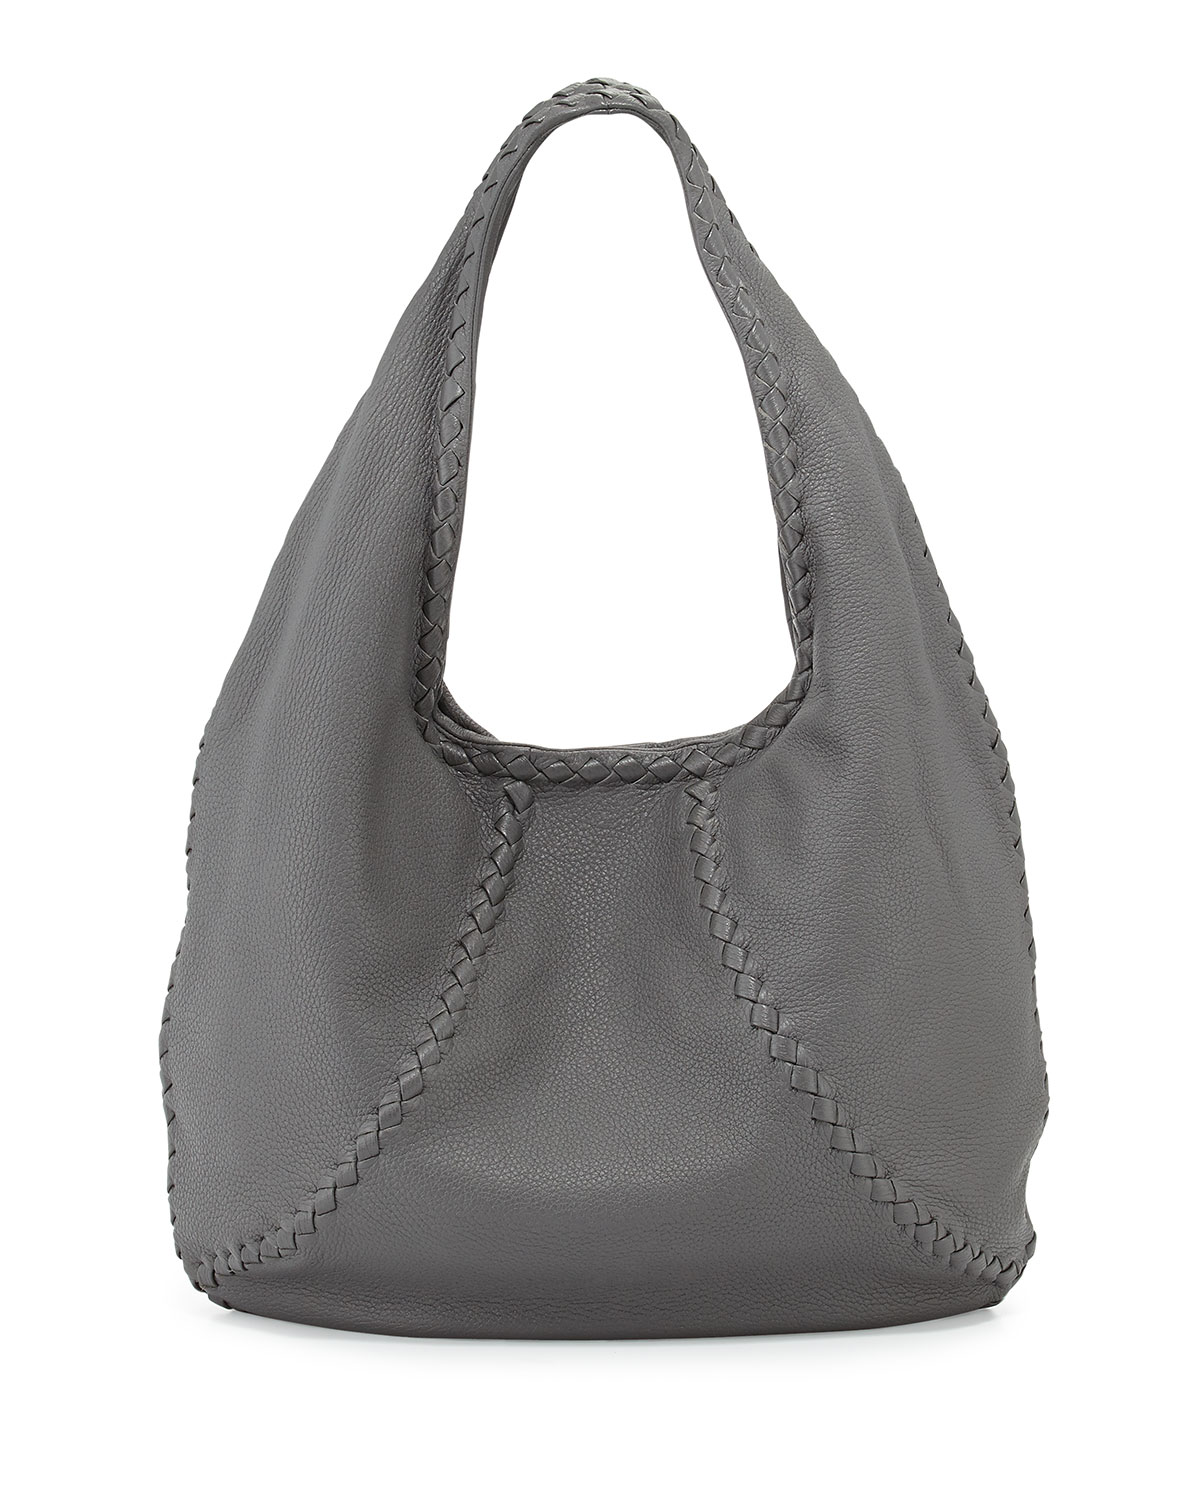 f10b5af9b87f Bottega Veneta Cervo Medium Open-Shoulder Hobo Bag, New Light Gray ...